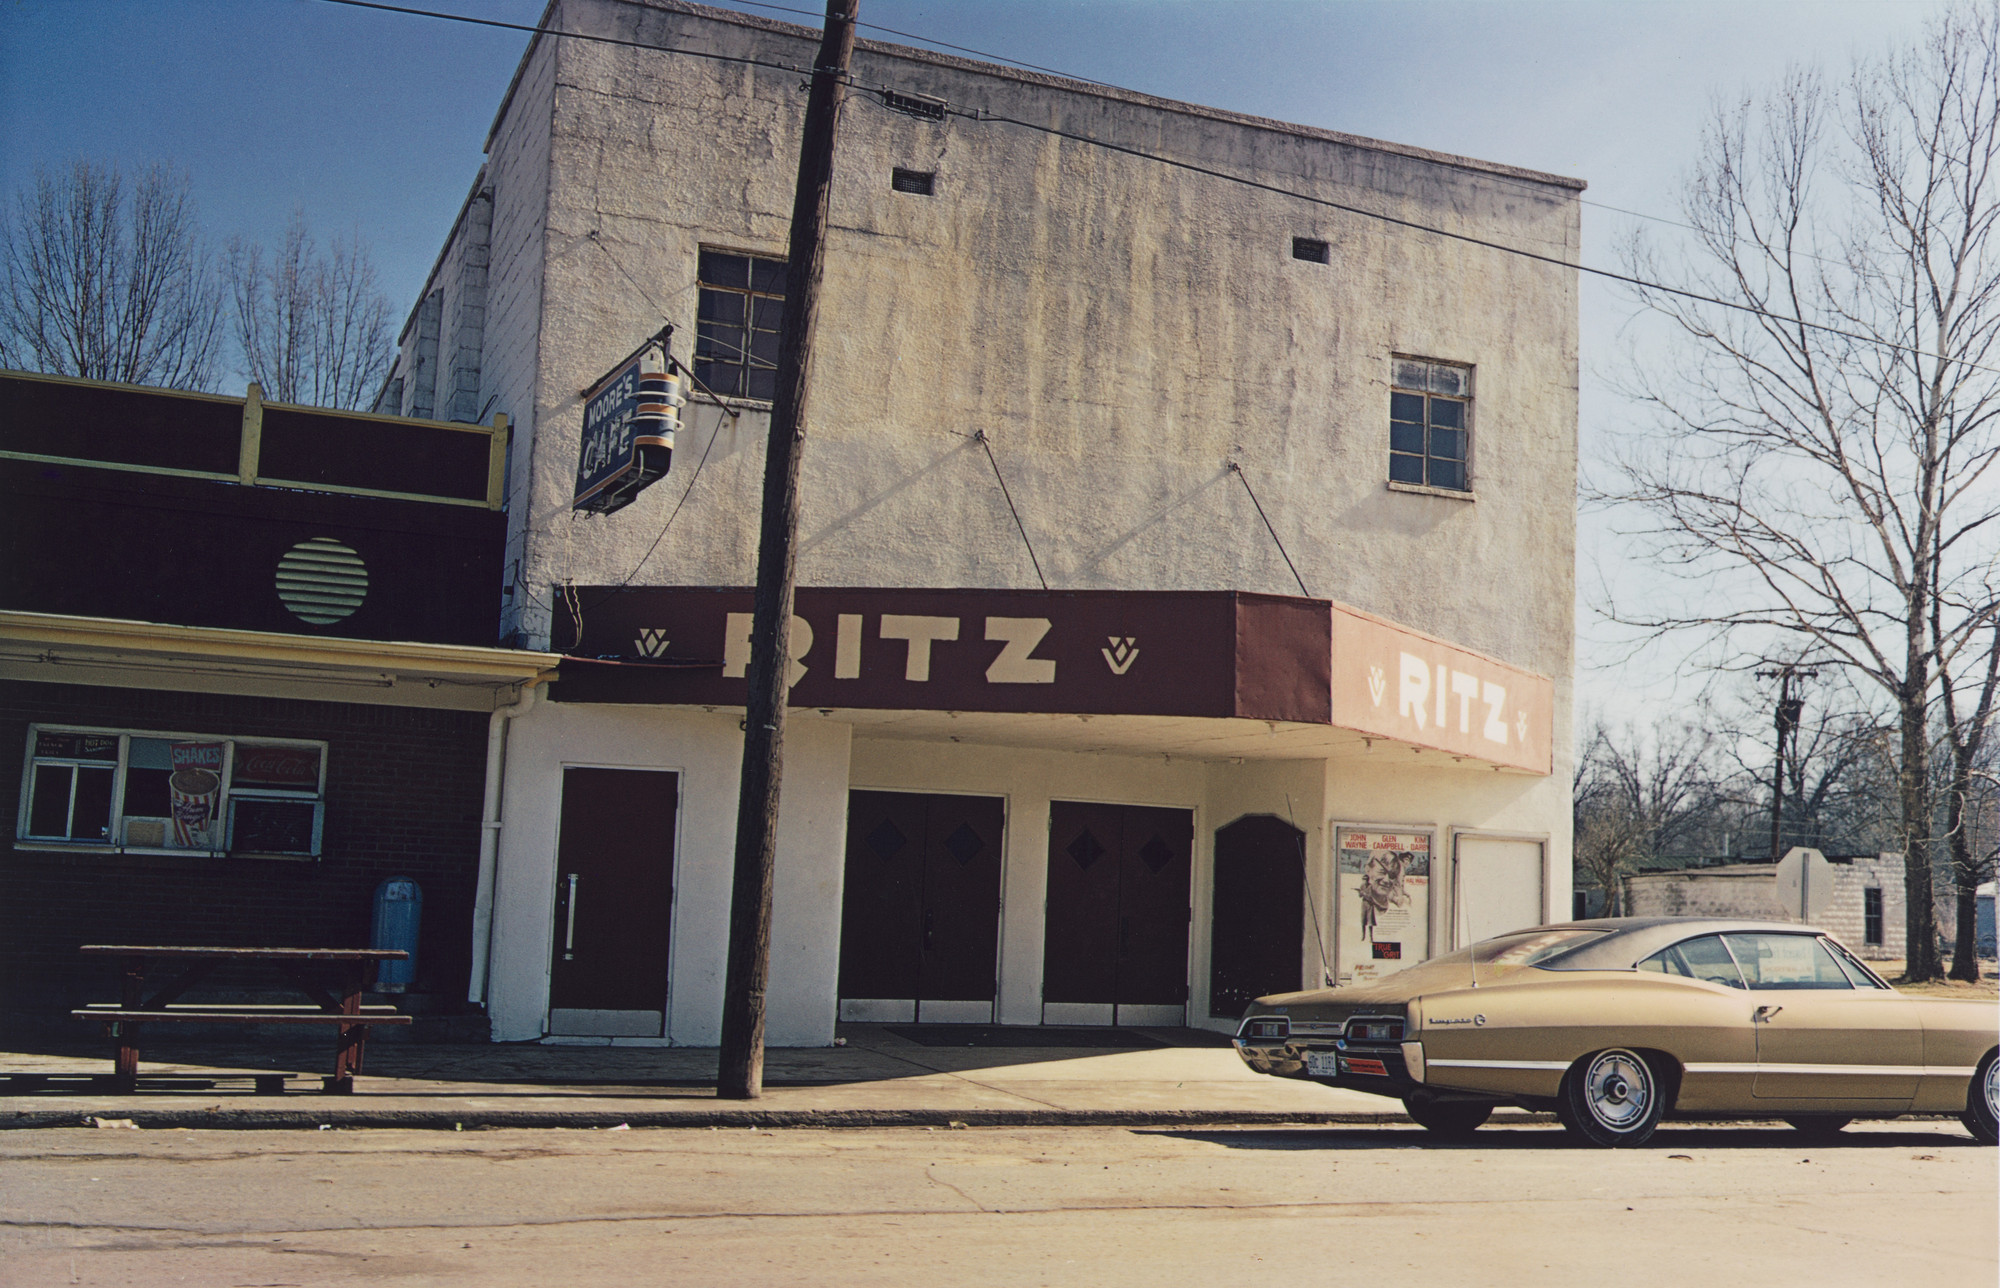 William Eggleston. Crenshaw, Mississippi. c. 1969-70